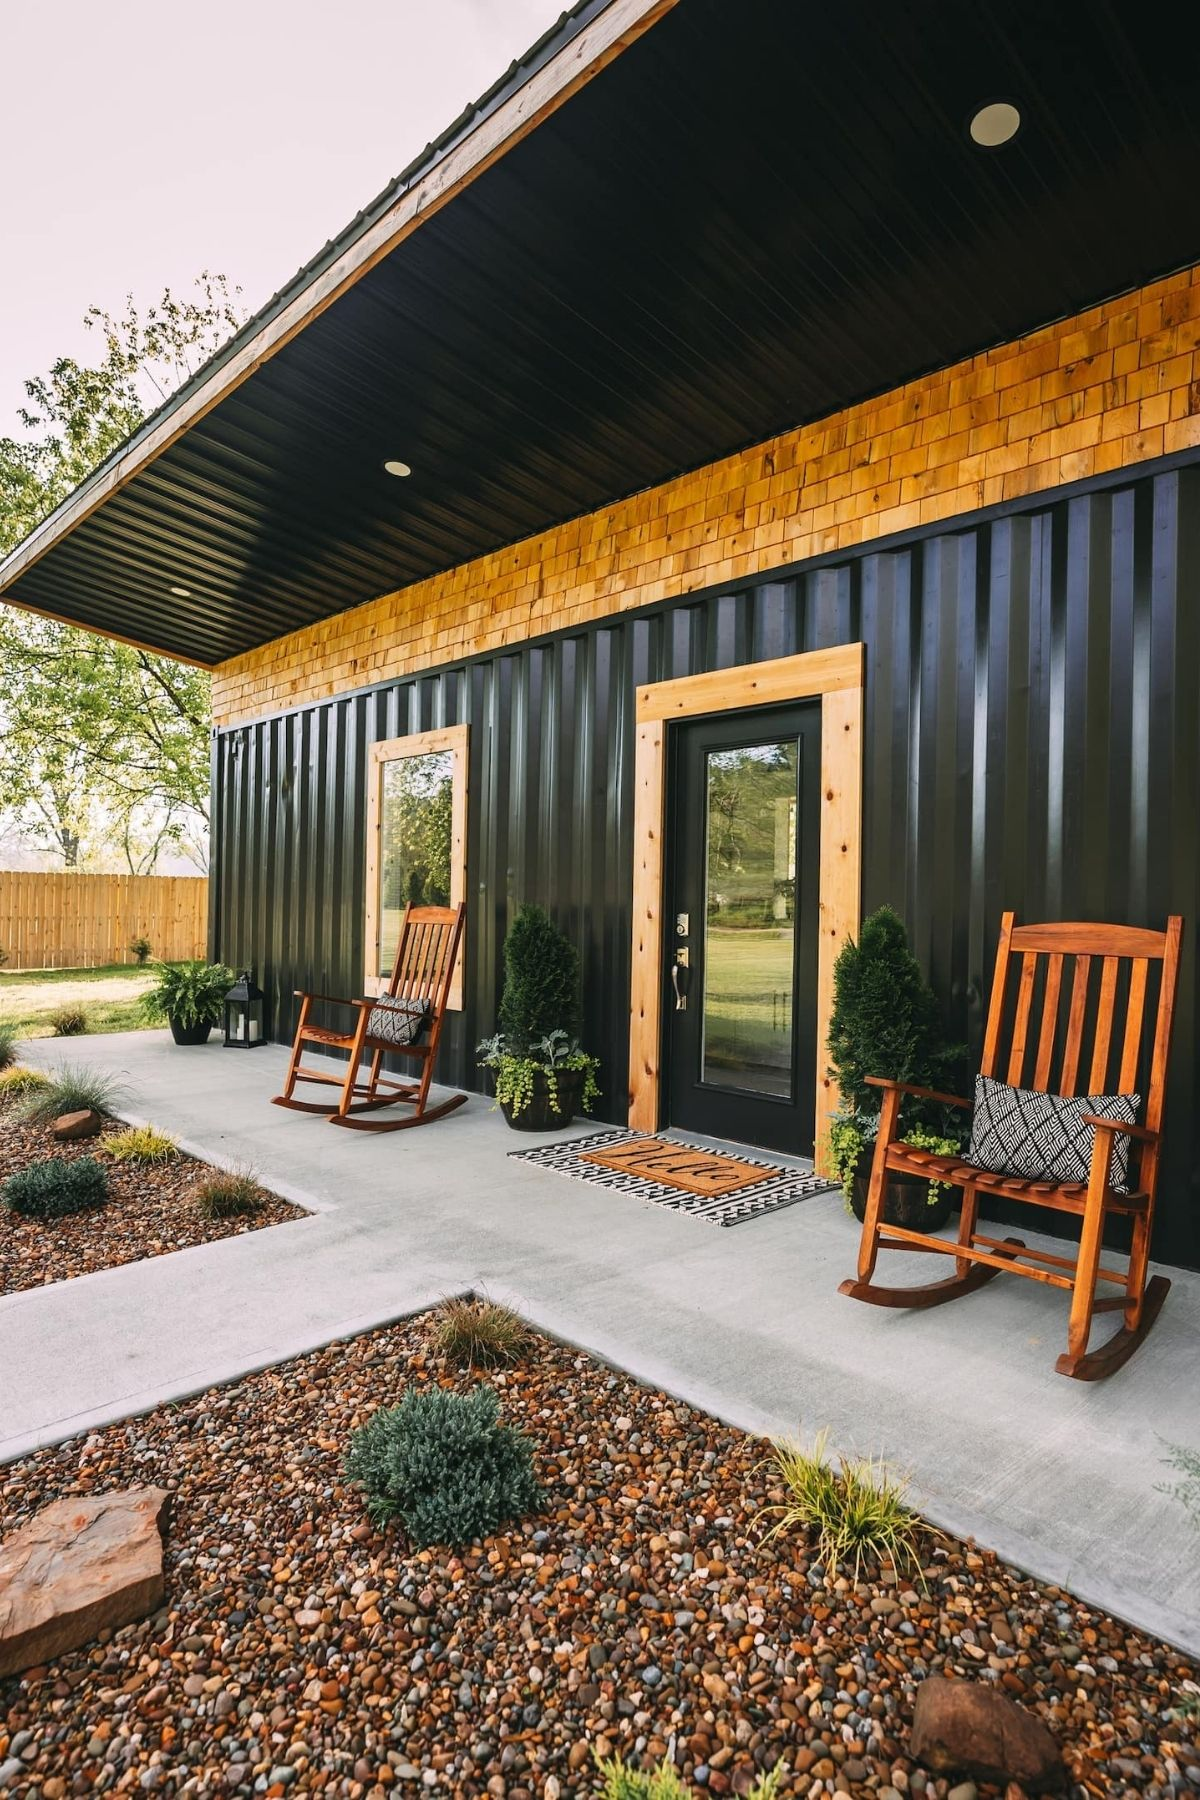 Wood trim around black front door to black shipping container home